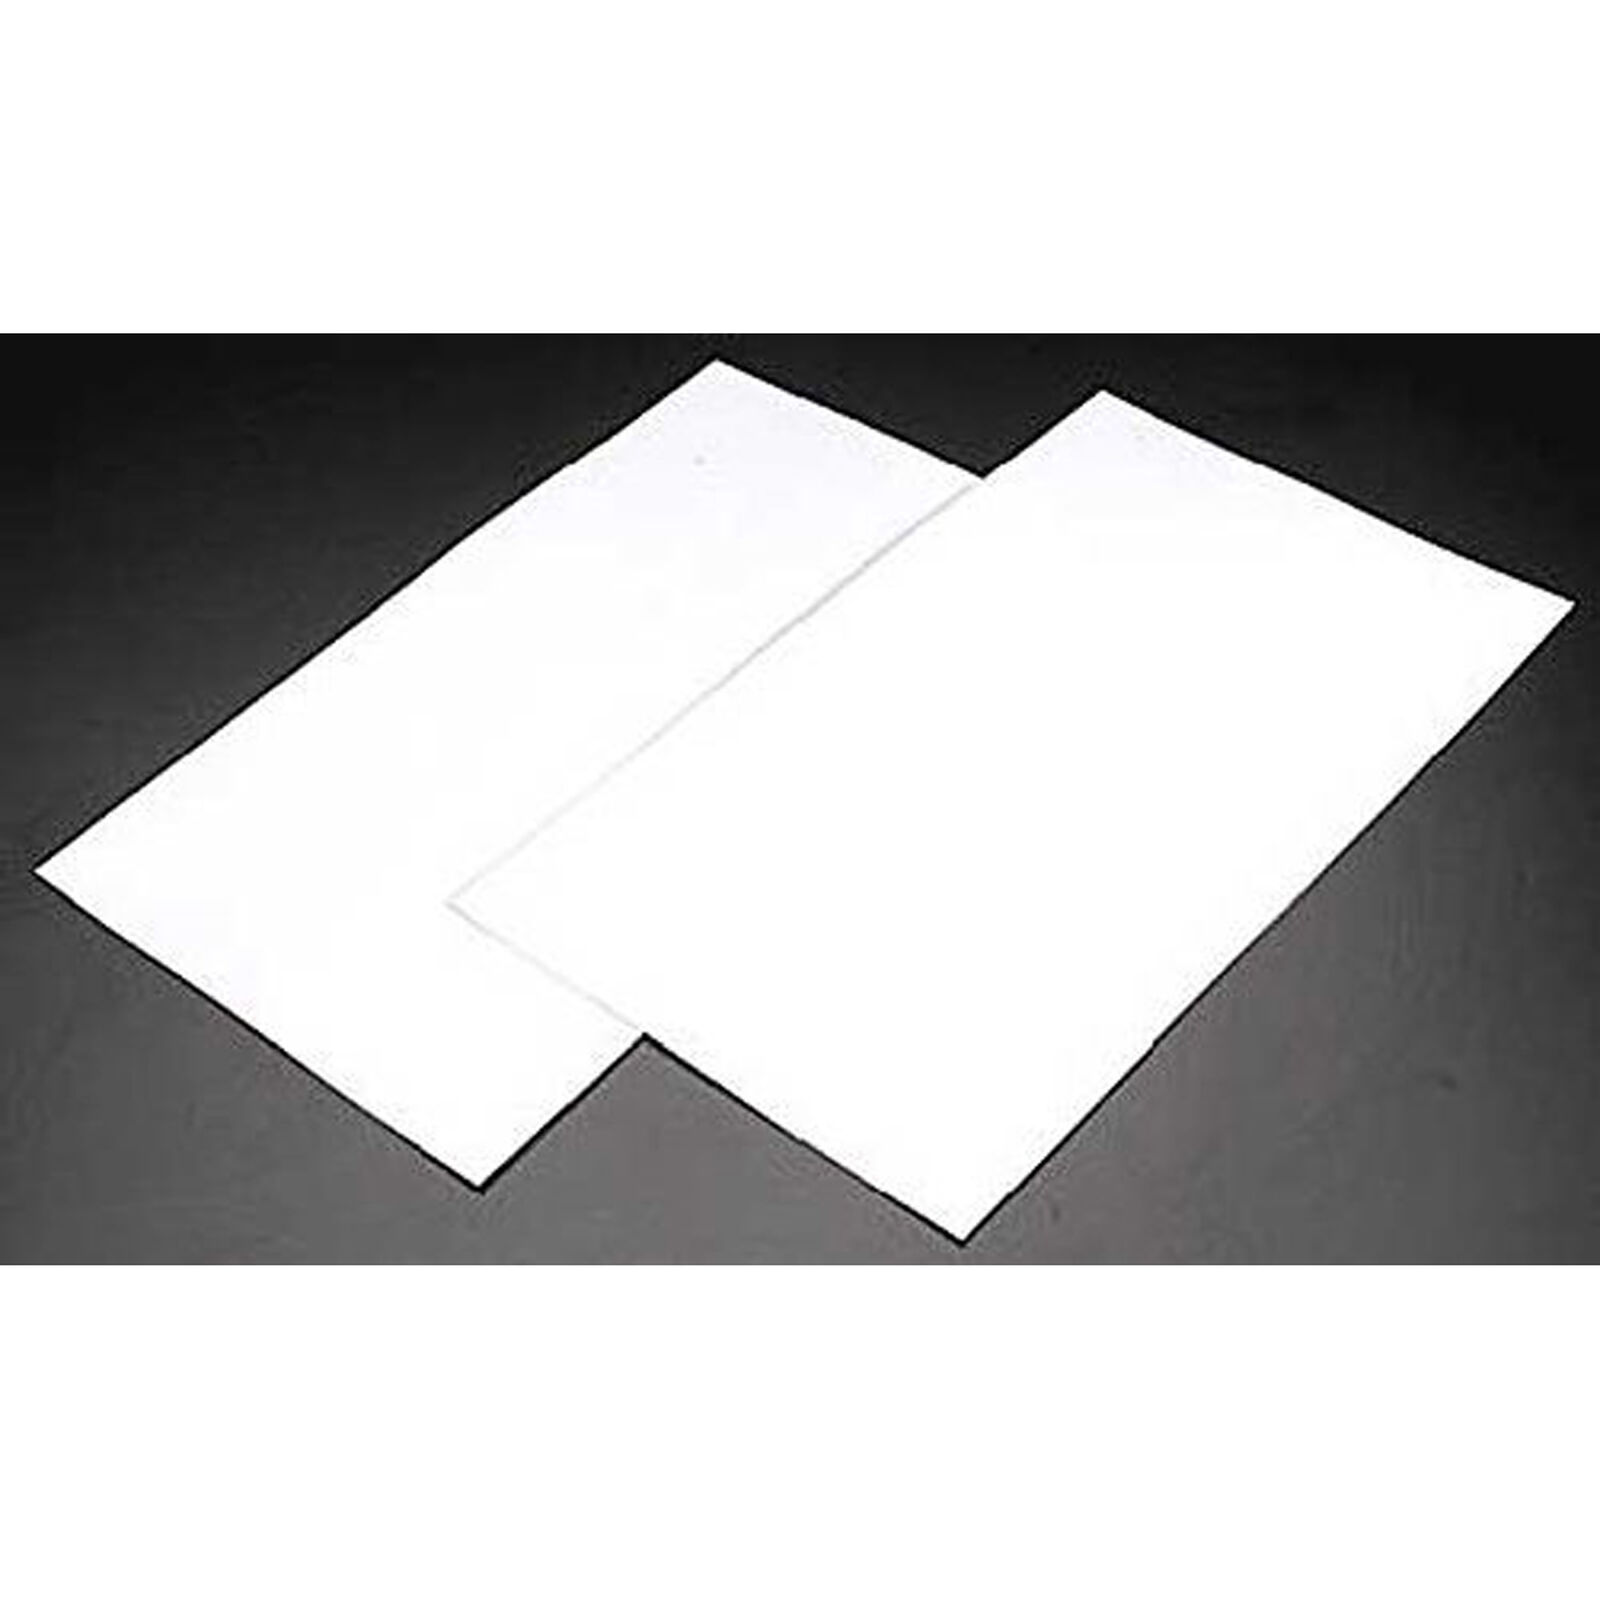 PS-10 N Corrugated Sheets (2)